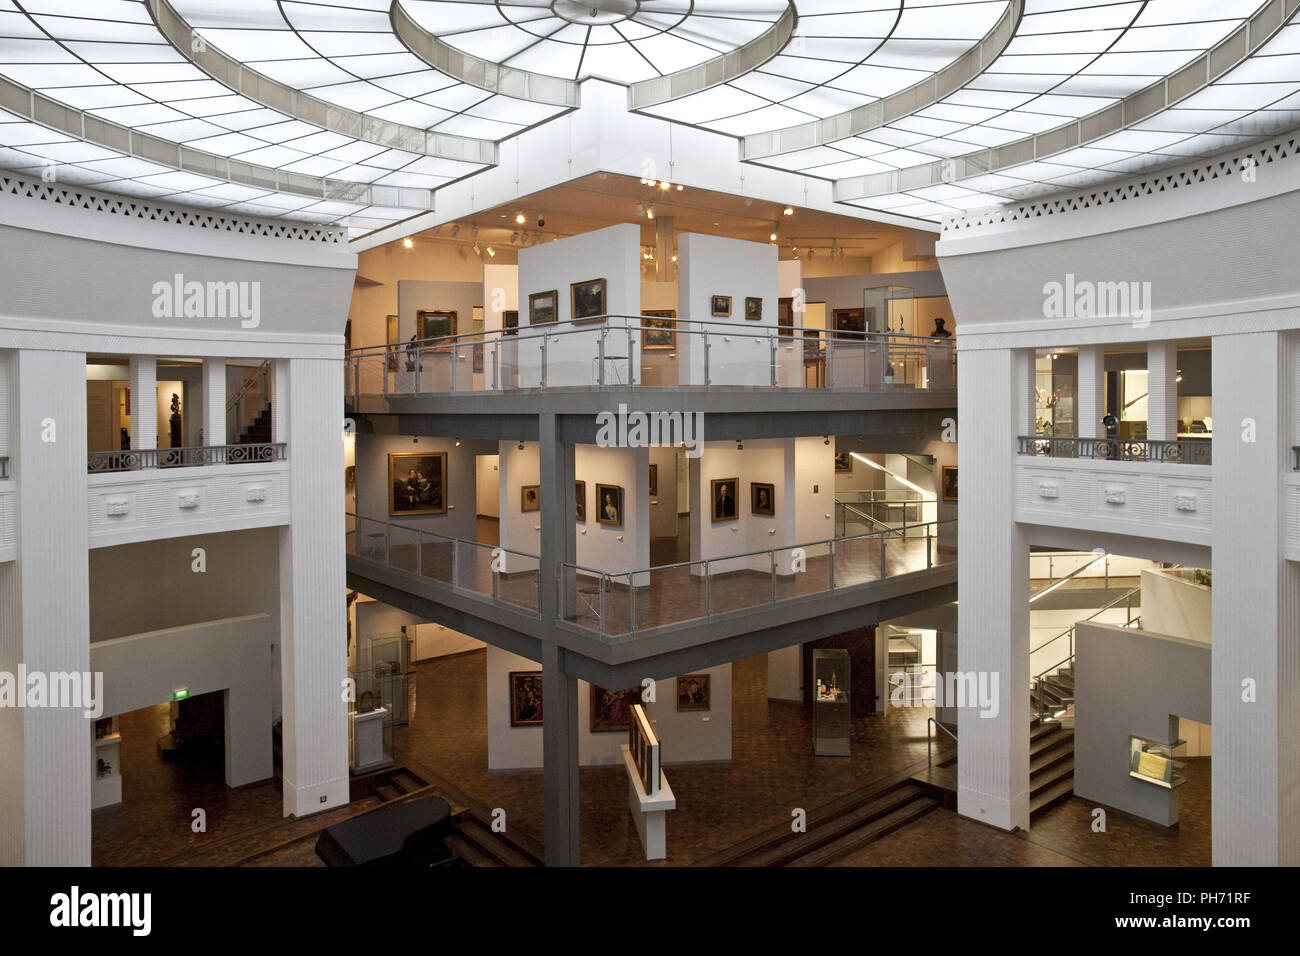 Art Deco Stil Art Deco Stil Stock Photos Art Deco Stil Stock Images Alamy